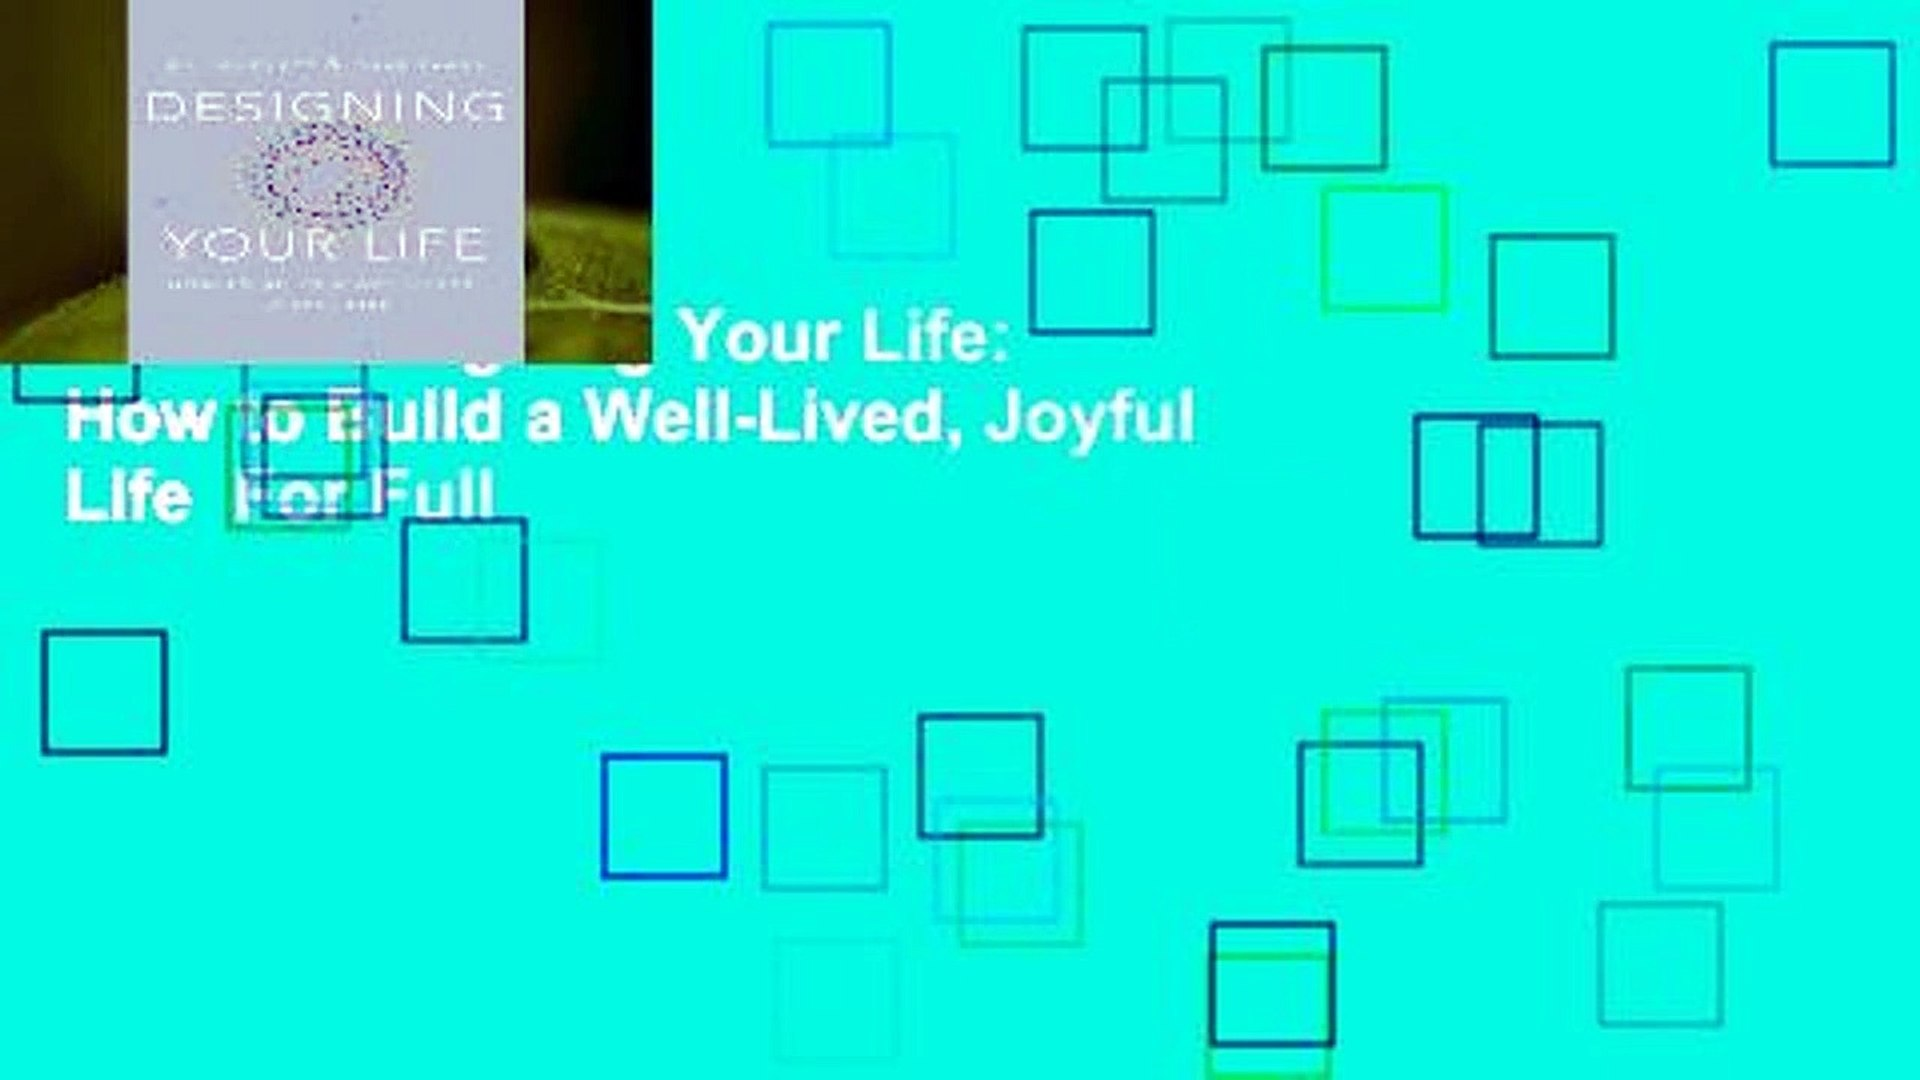 Online Designing Your Life: How to Build a Well-Lived, Joyful Life  For Full